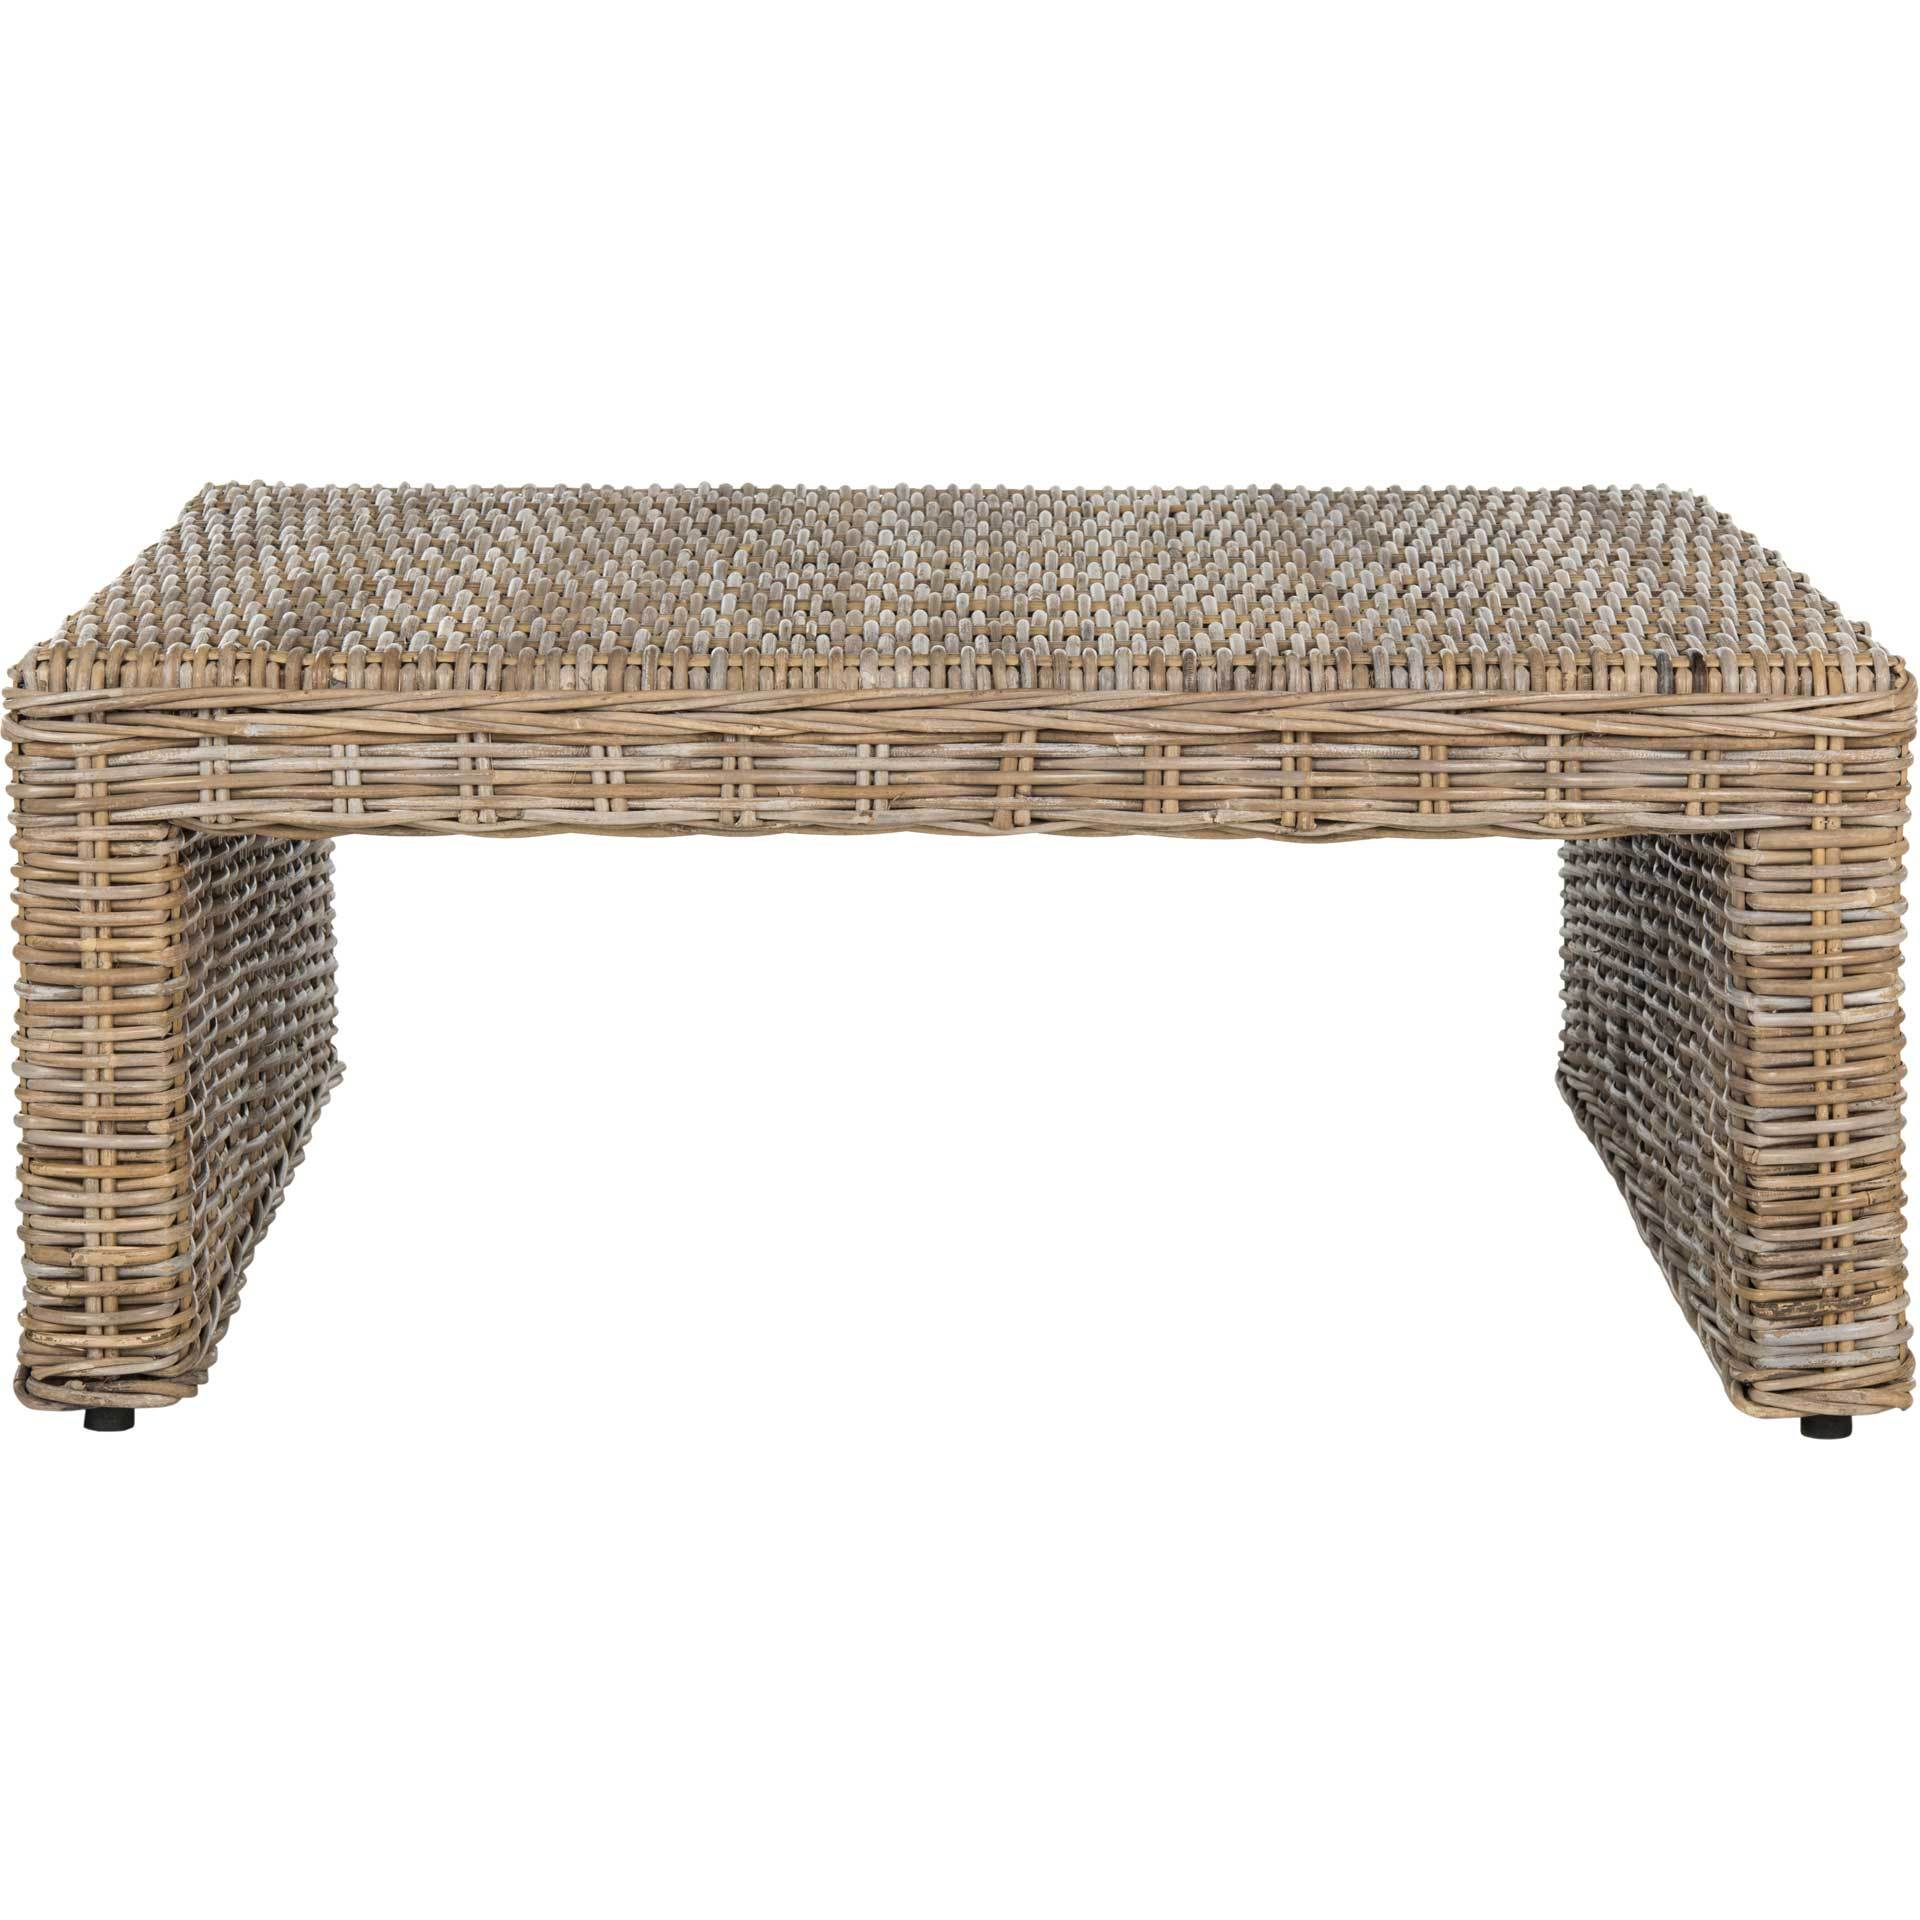 Peter Wicker Coffee Table